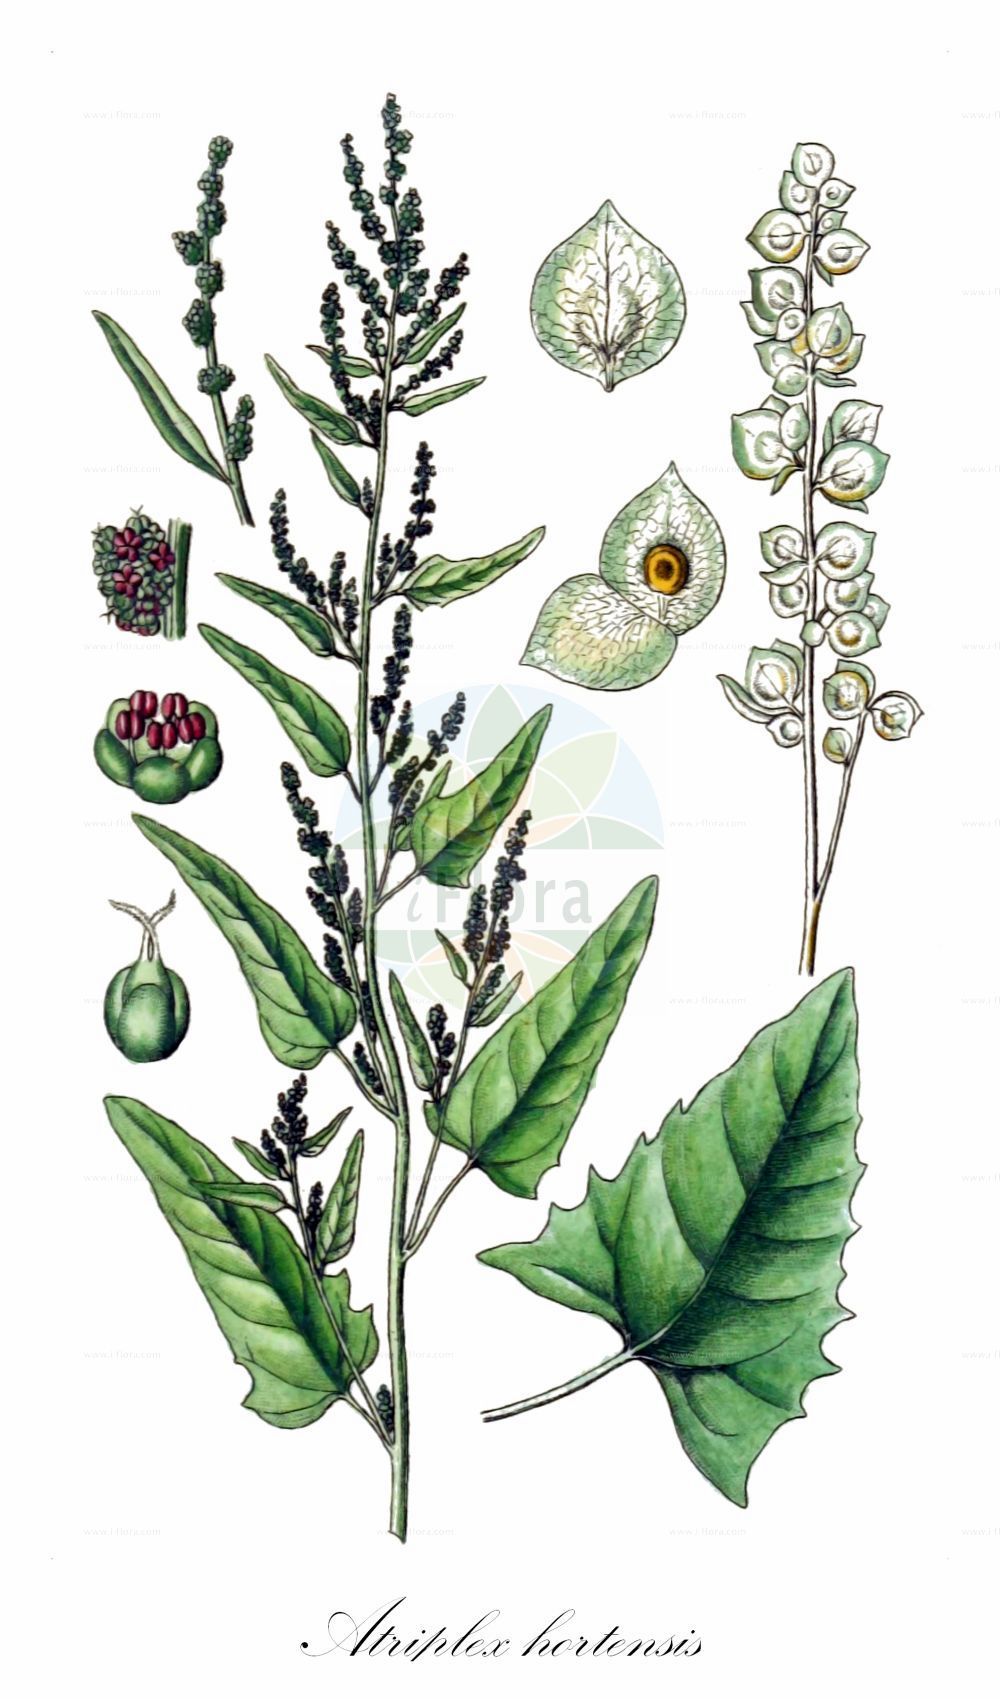 Historische Abbildung von Atriplex hortensis (Garten-Melde - Garden Orache). Das Bild zeigt Blatt, Bluete, Frucht und Same. ---- Historical Drawing of Atriplex hortensis (Garten-Melde - Garden Orache).The image is showing leaf, flower, fruit and seed.(Atriplex hortensis,Garten-Melde,Garden Orache,Atriplex microtheca,Atriplex,Melde,Saltbush,Amaranthaceae,Fuchsschwanzgewaechse,Pigweed family,Blatt,Bluete,Frucht,Same,leaf,flower,fruit,seed,Sturm (1796f))